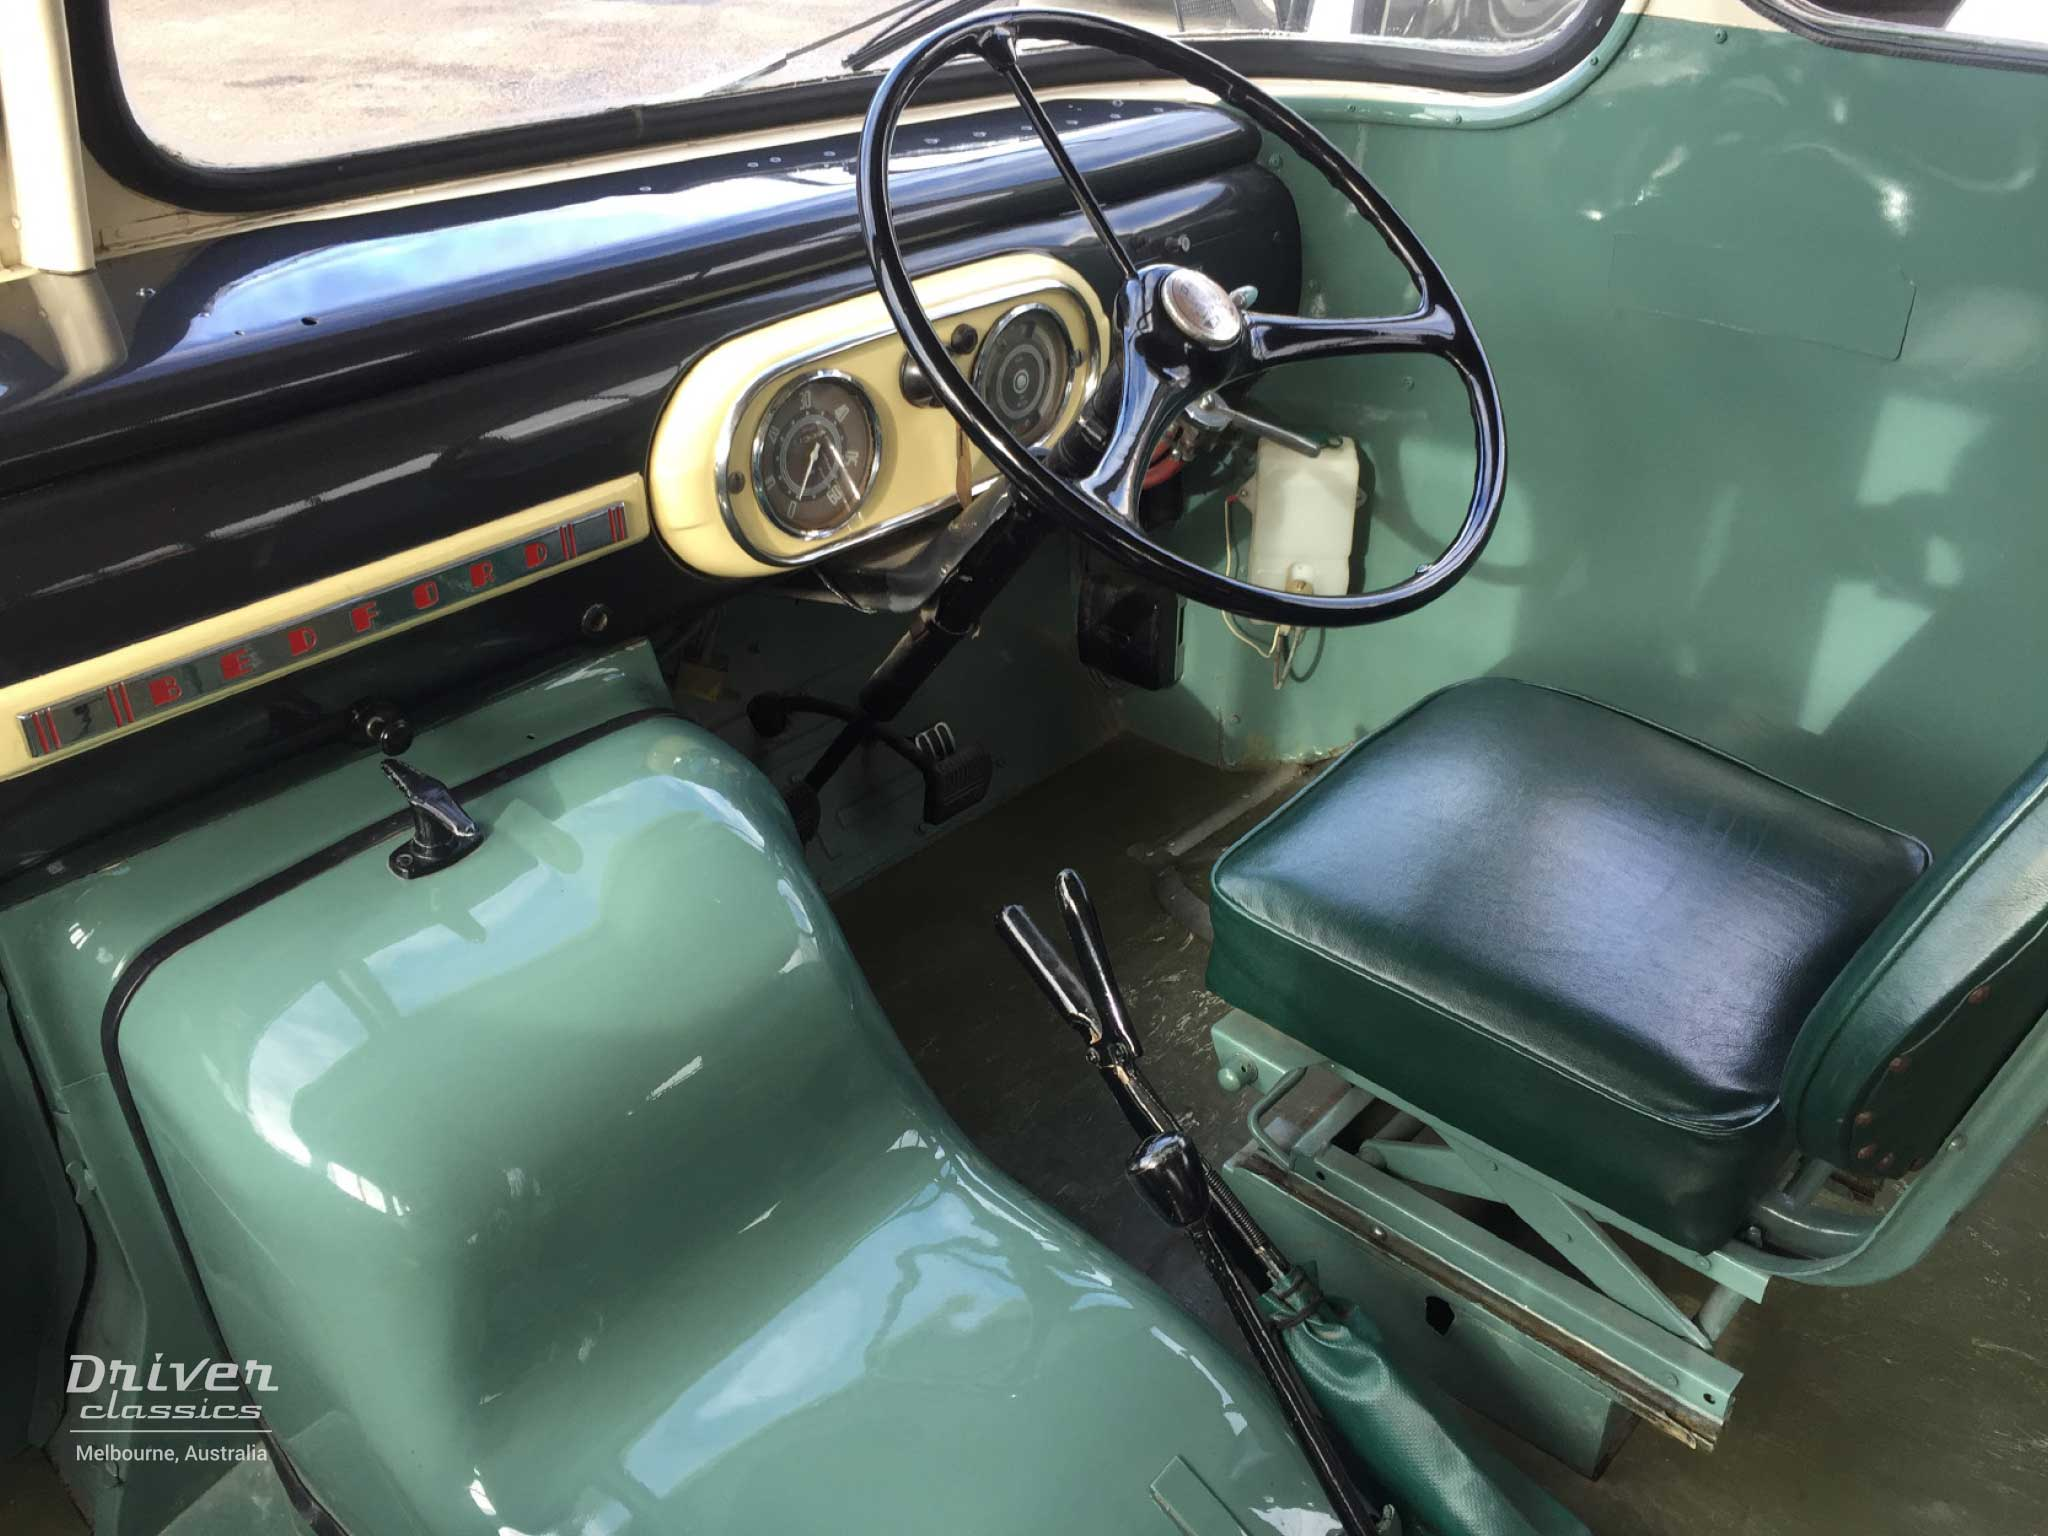 Bedford SB3 bus (1959 model), Dashboard and drivers seat.